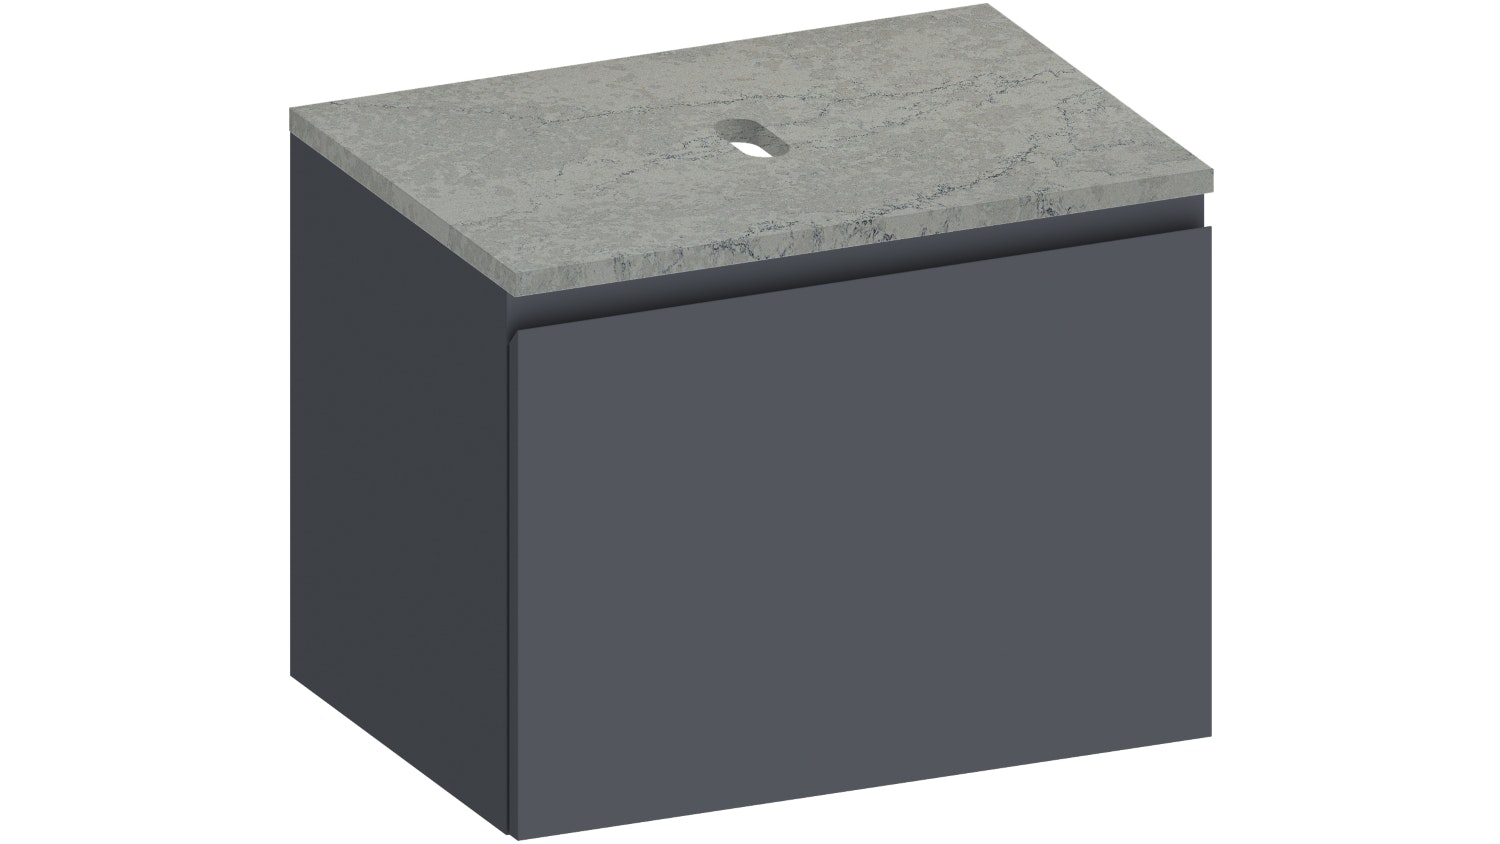 okoon Elements Wall Hung Vanity with Fumo Stone Top - Matte Graphite